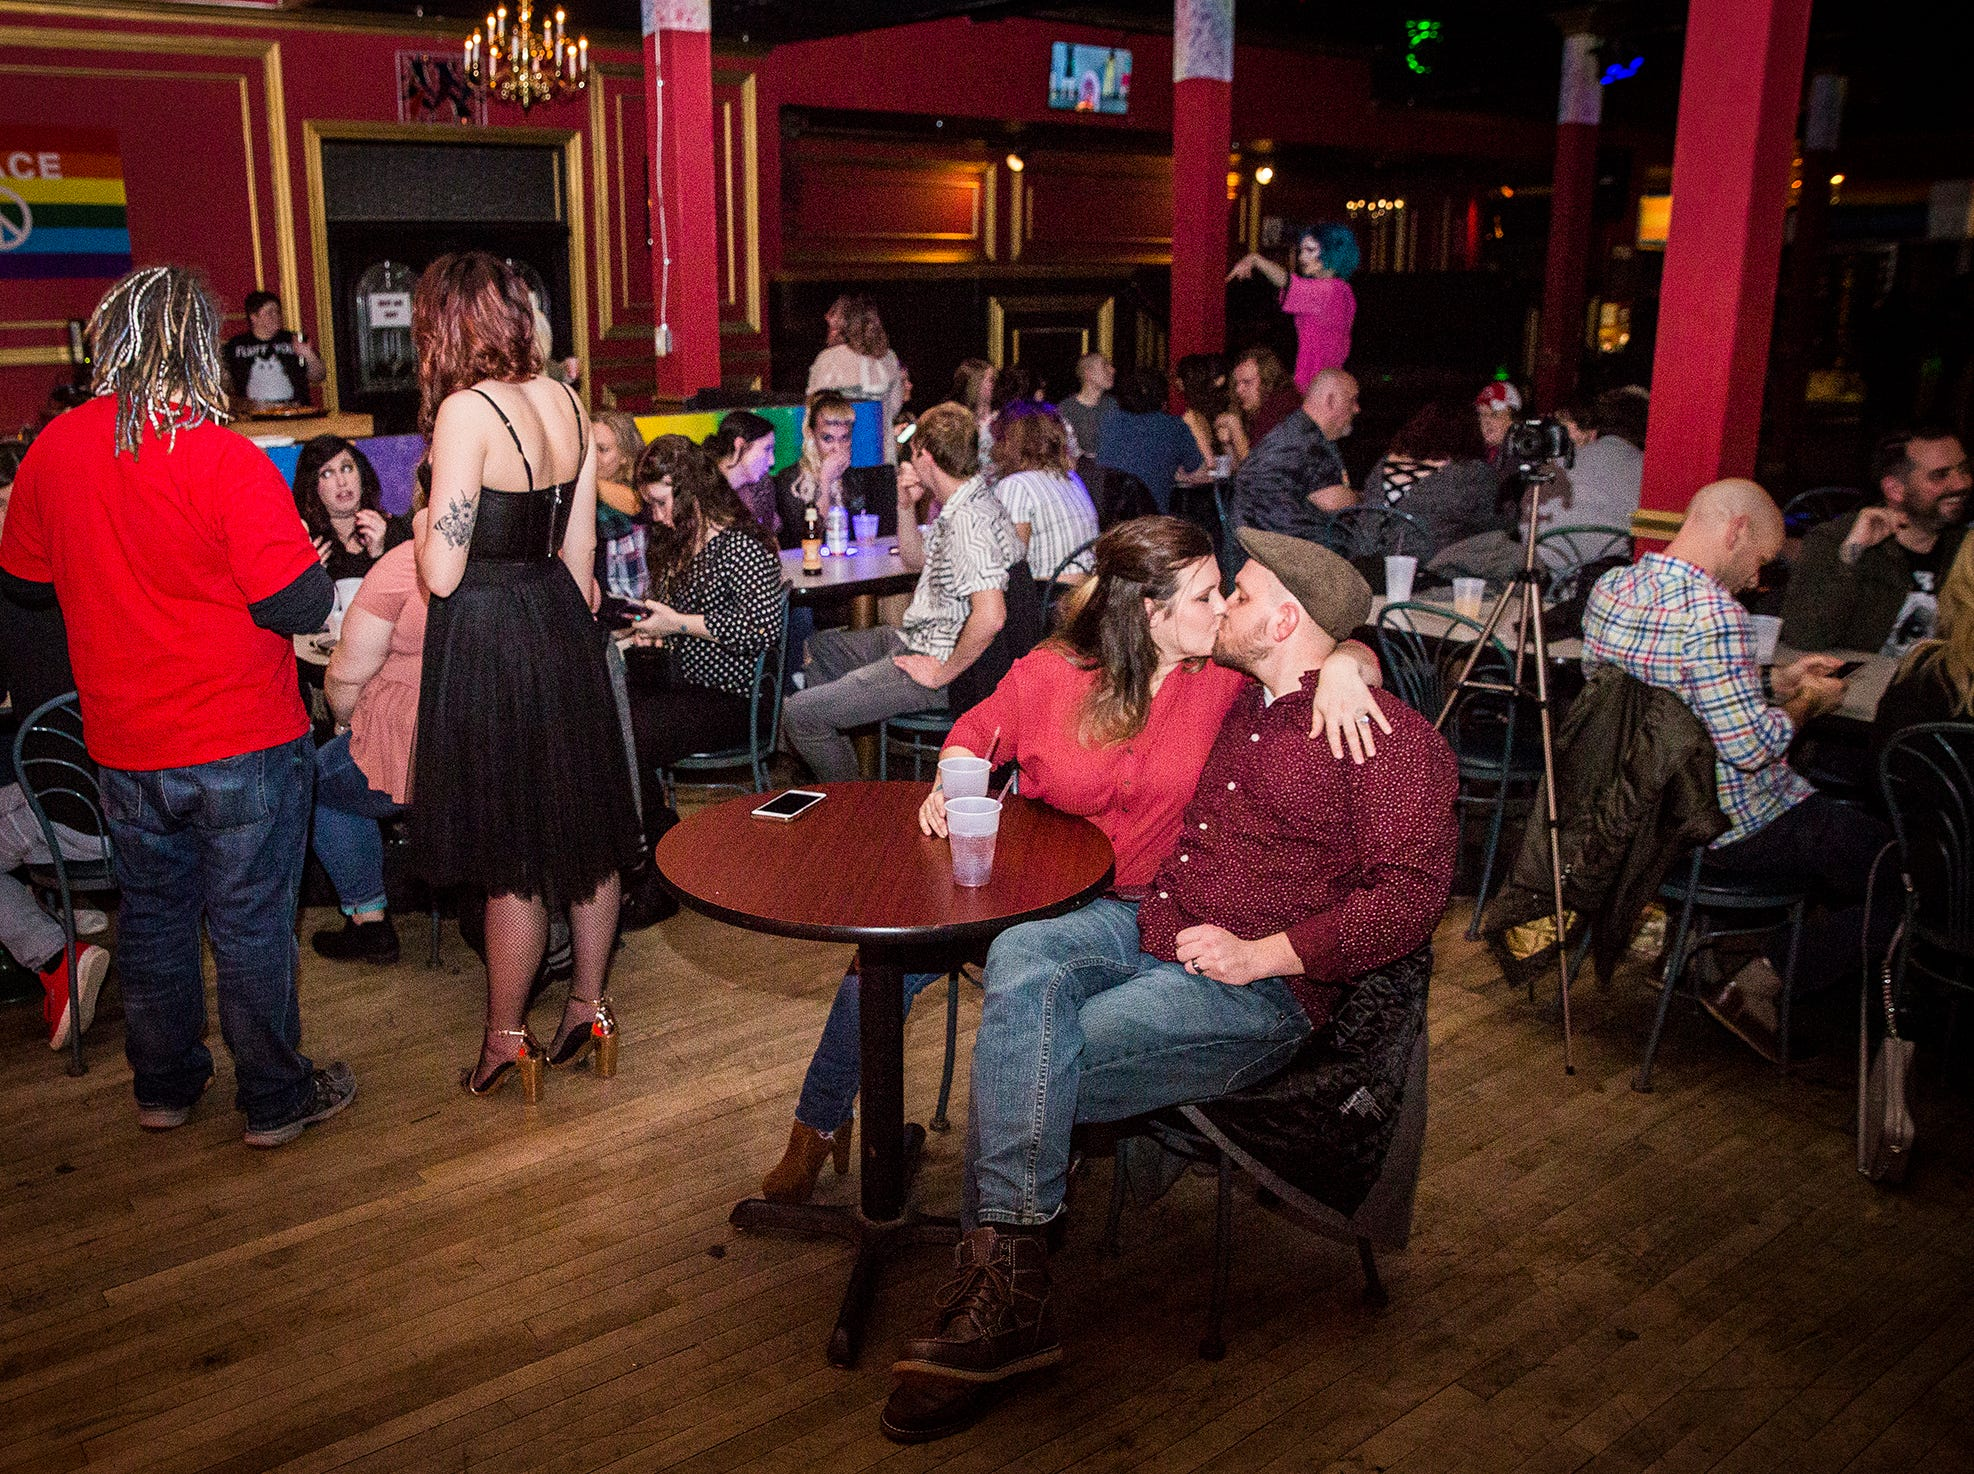 A crowd waits for the start of the Fabulous Funcie Femmes burlesque show at the Mark III Taproom.